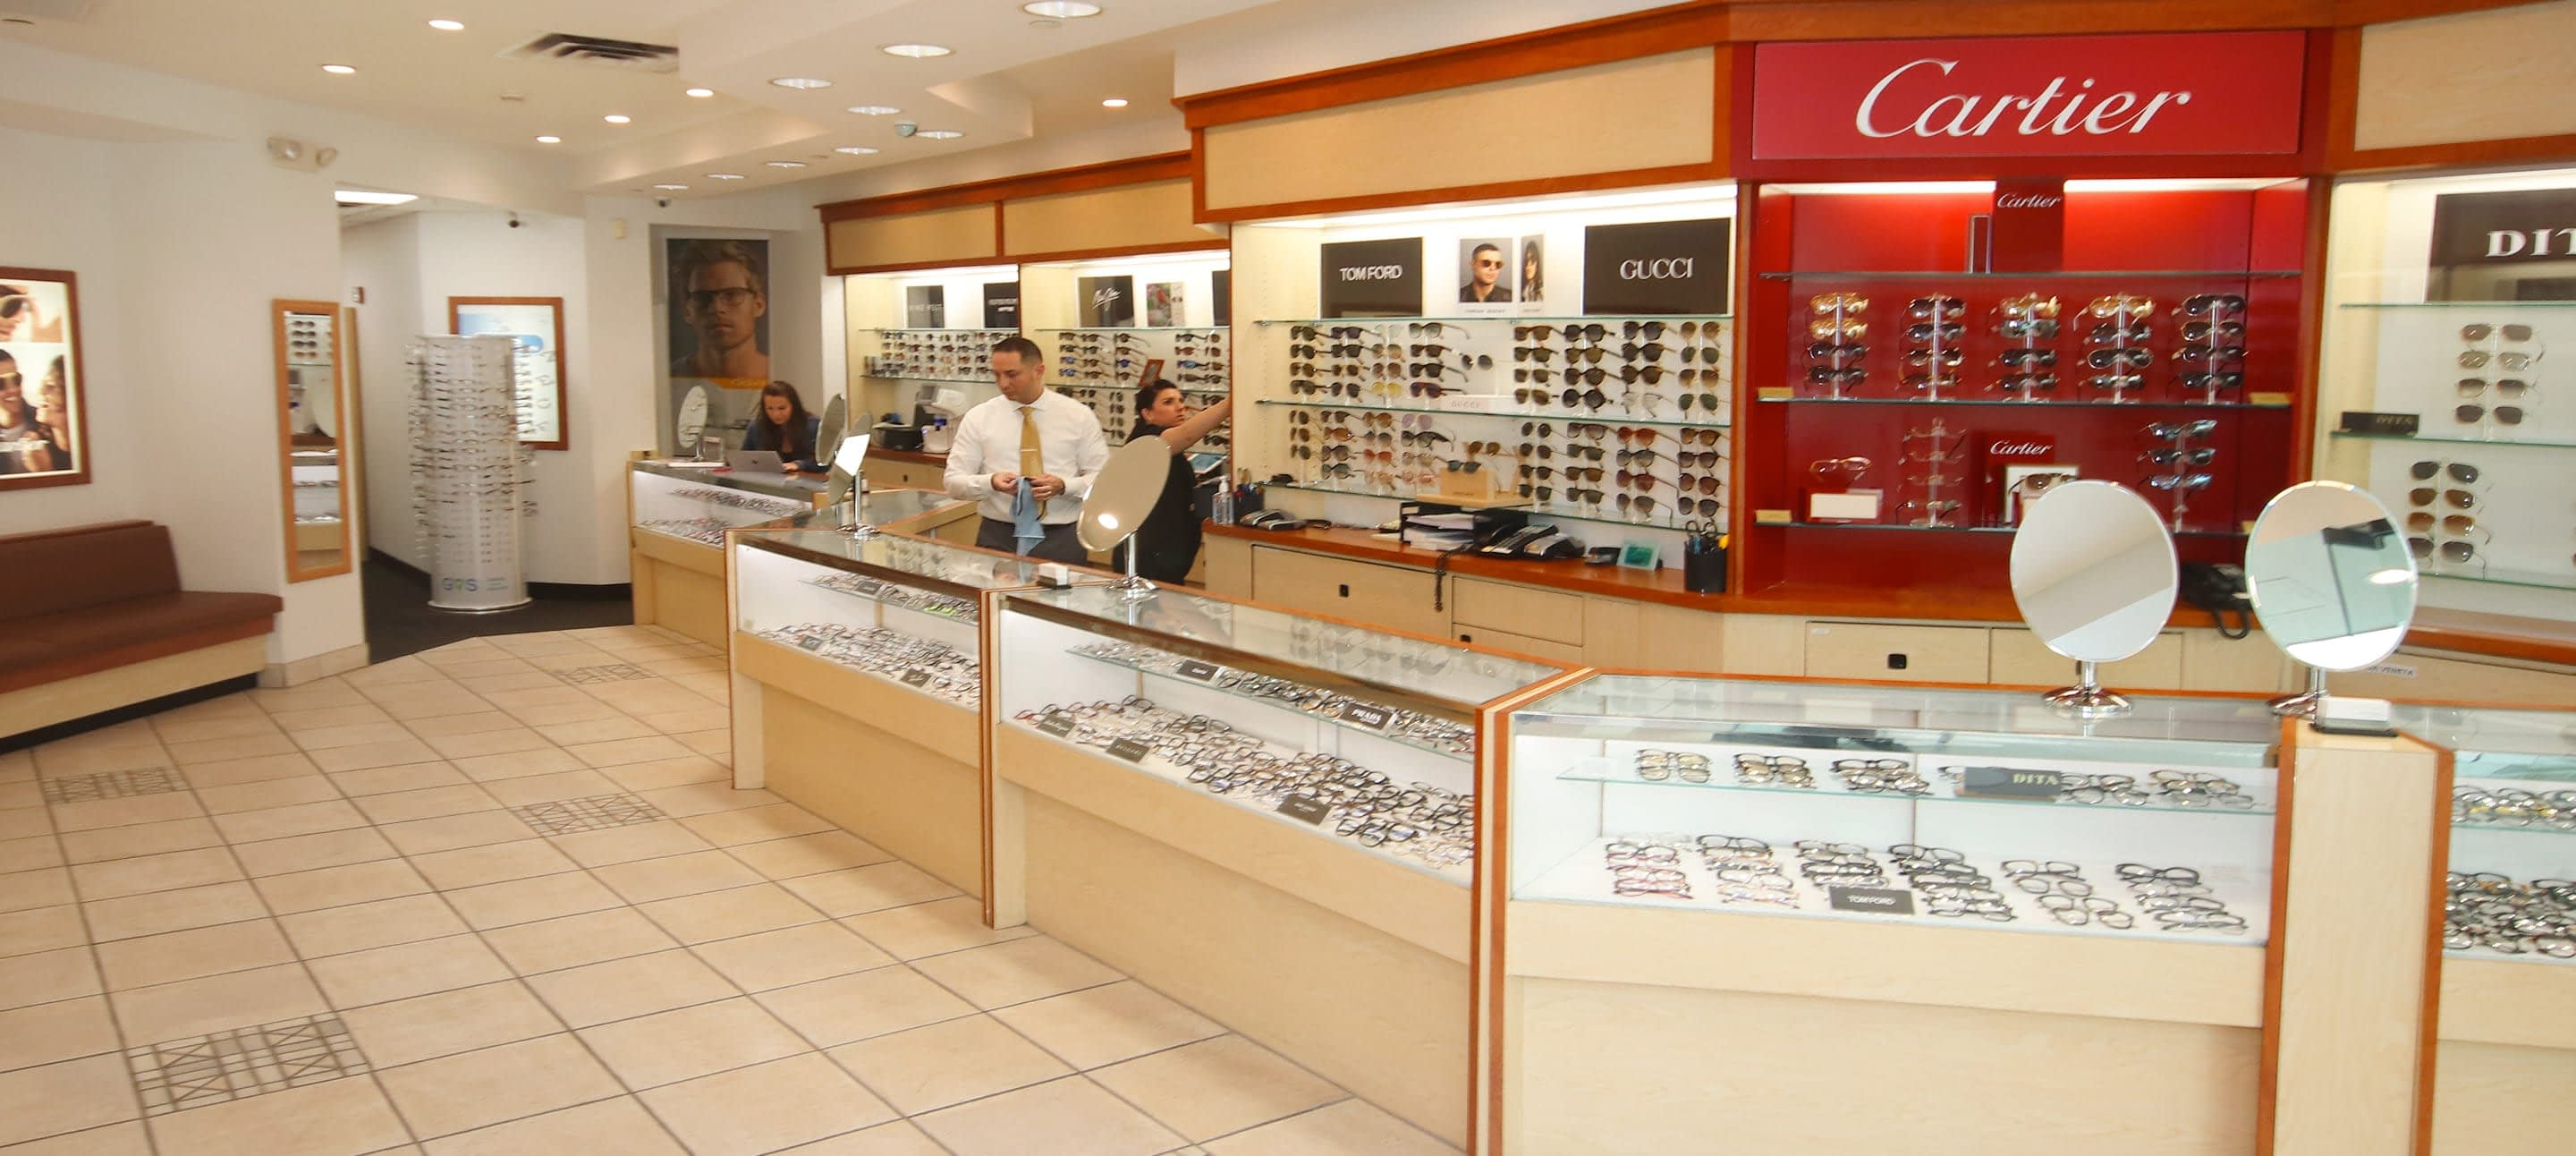 Eyeglasses & Eye Exams, Roosevelt Field Mall - Garden City, NY